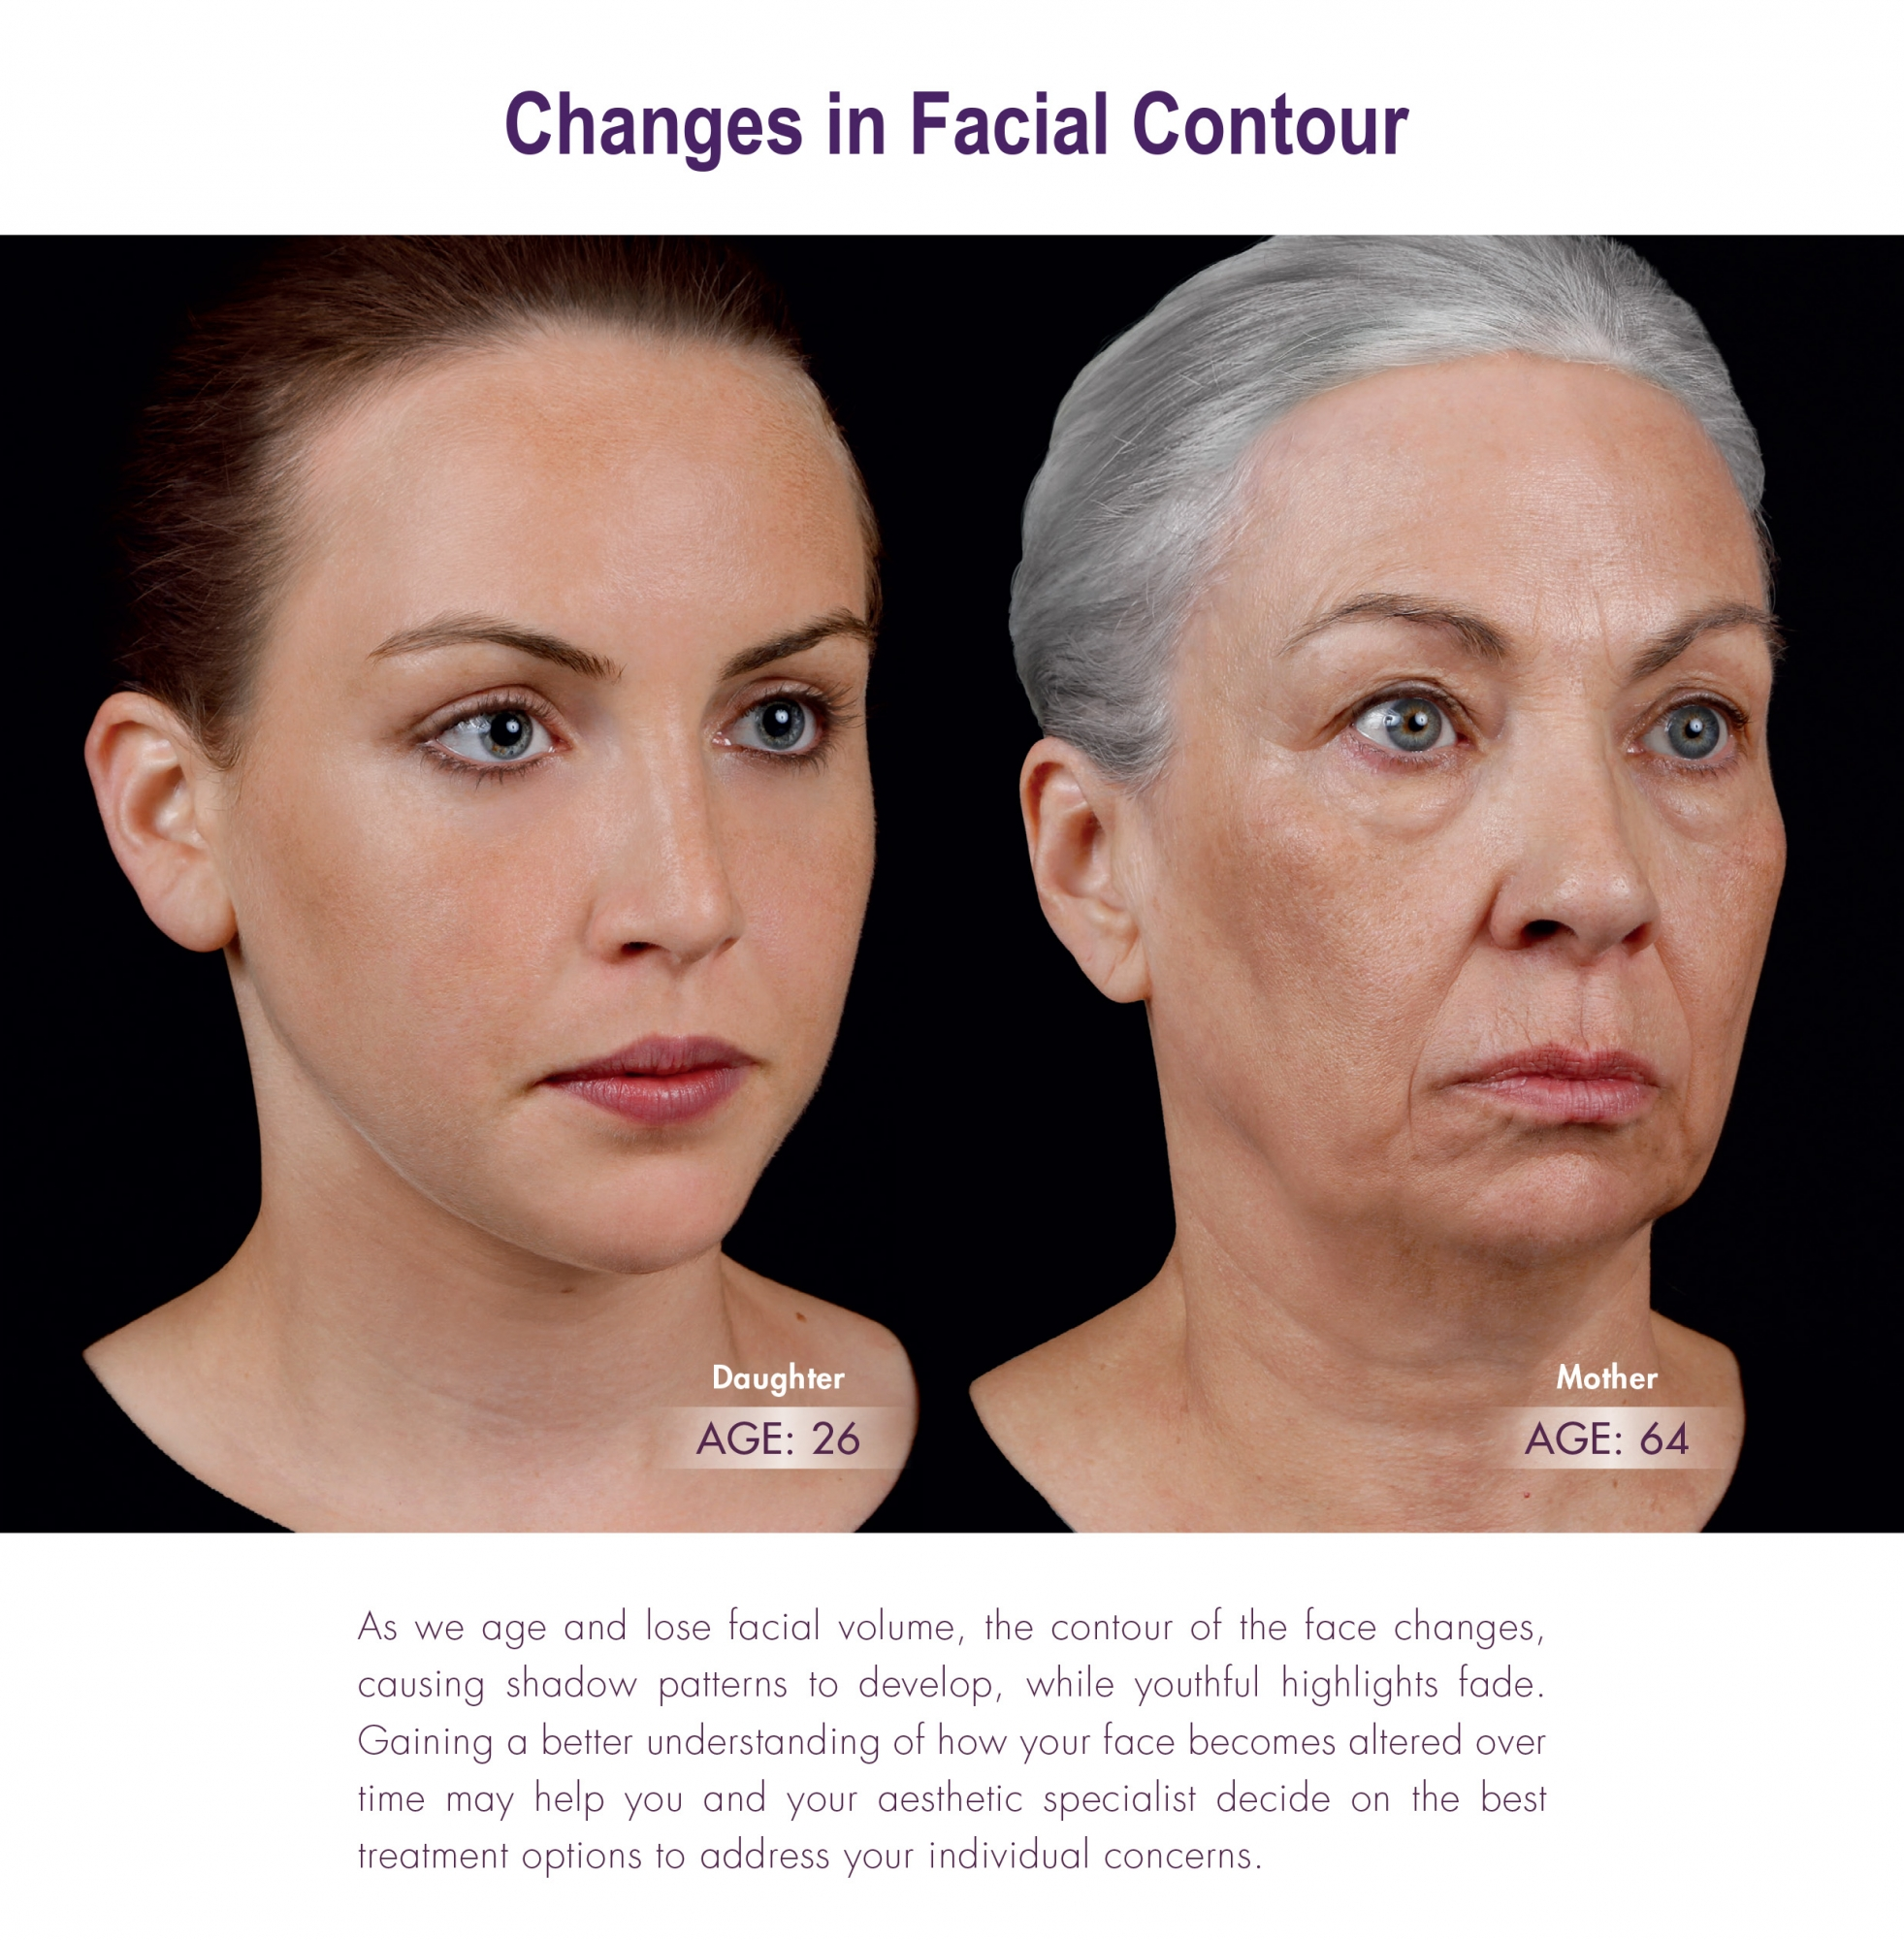 changes in facial contour with age - learn how Juvederm can help!